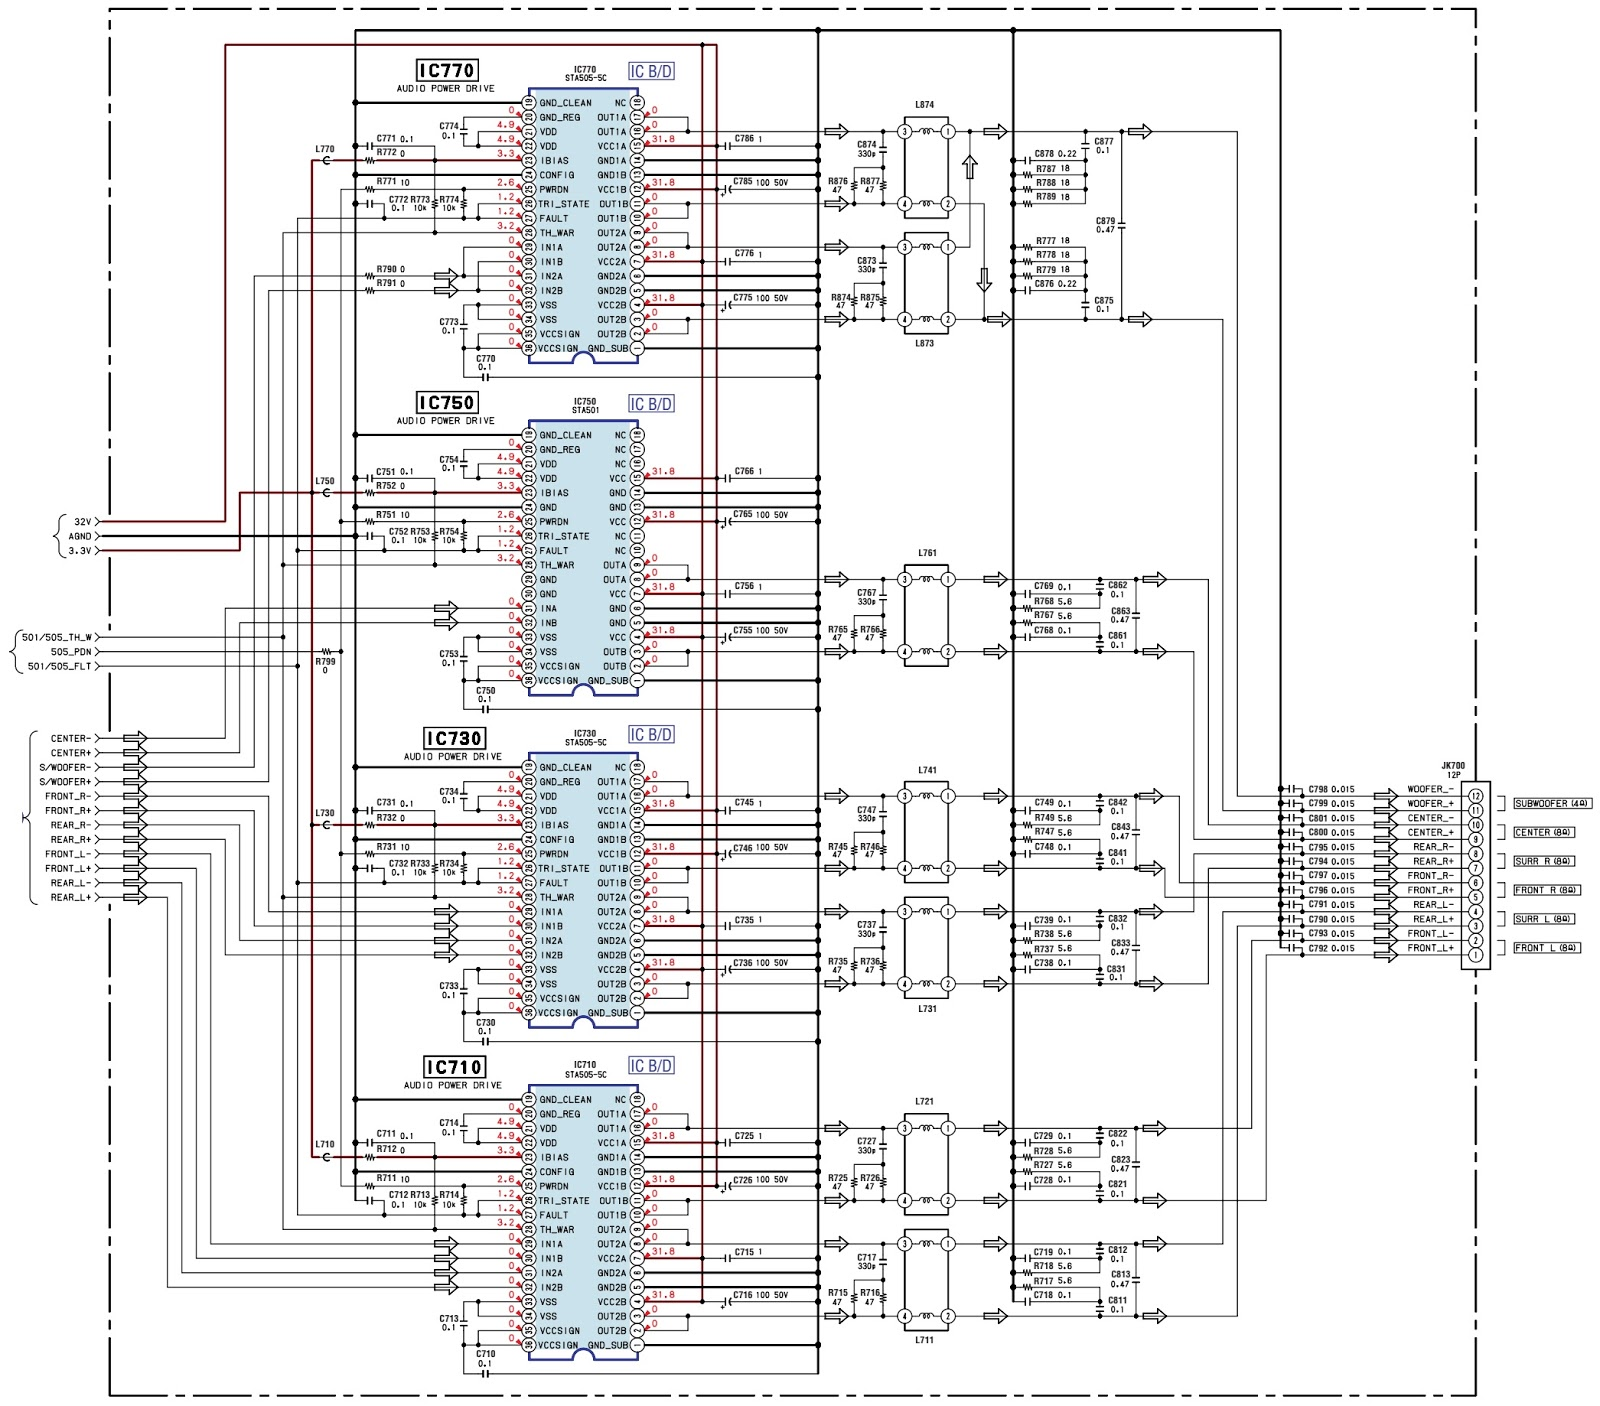 aiwa wiring diagram wiring library diagram h7aiwa wiring diagram wiring diagram z4 aiwa stereo wiring diagram [ 1600 x 1406 Pixel ]